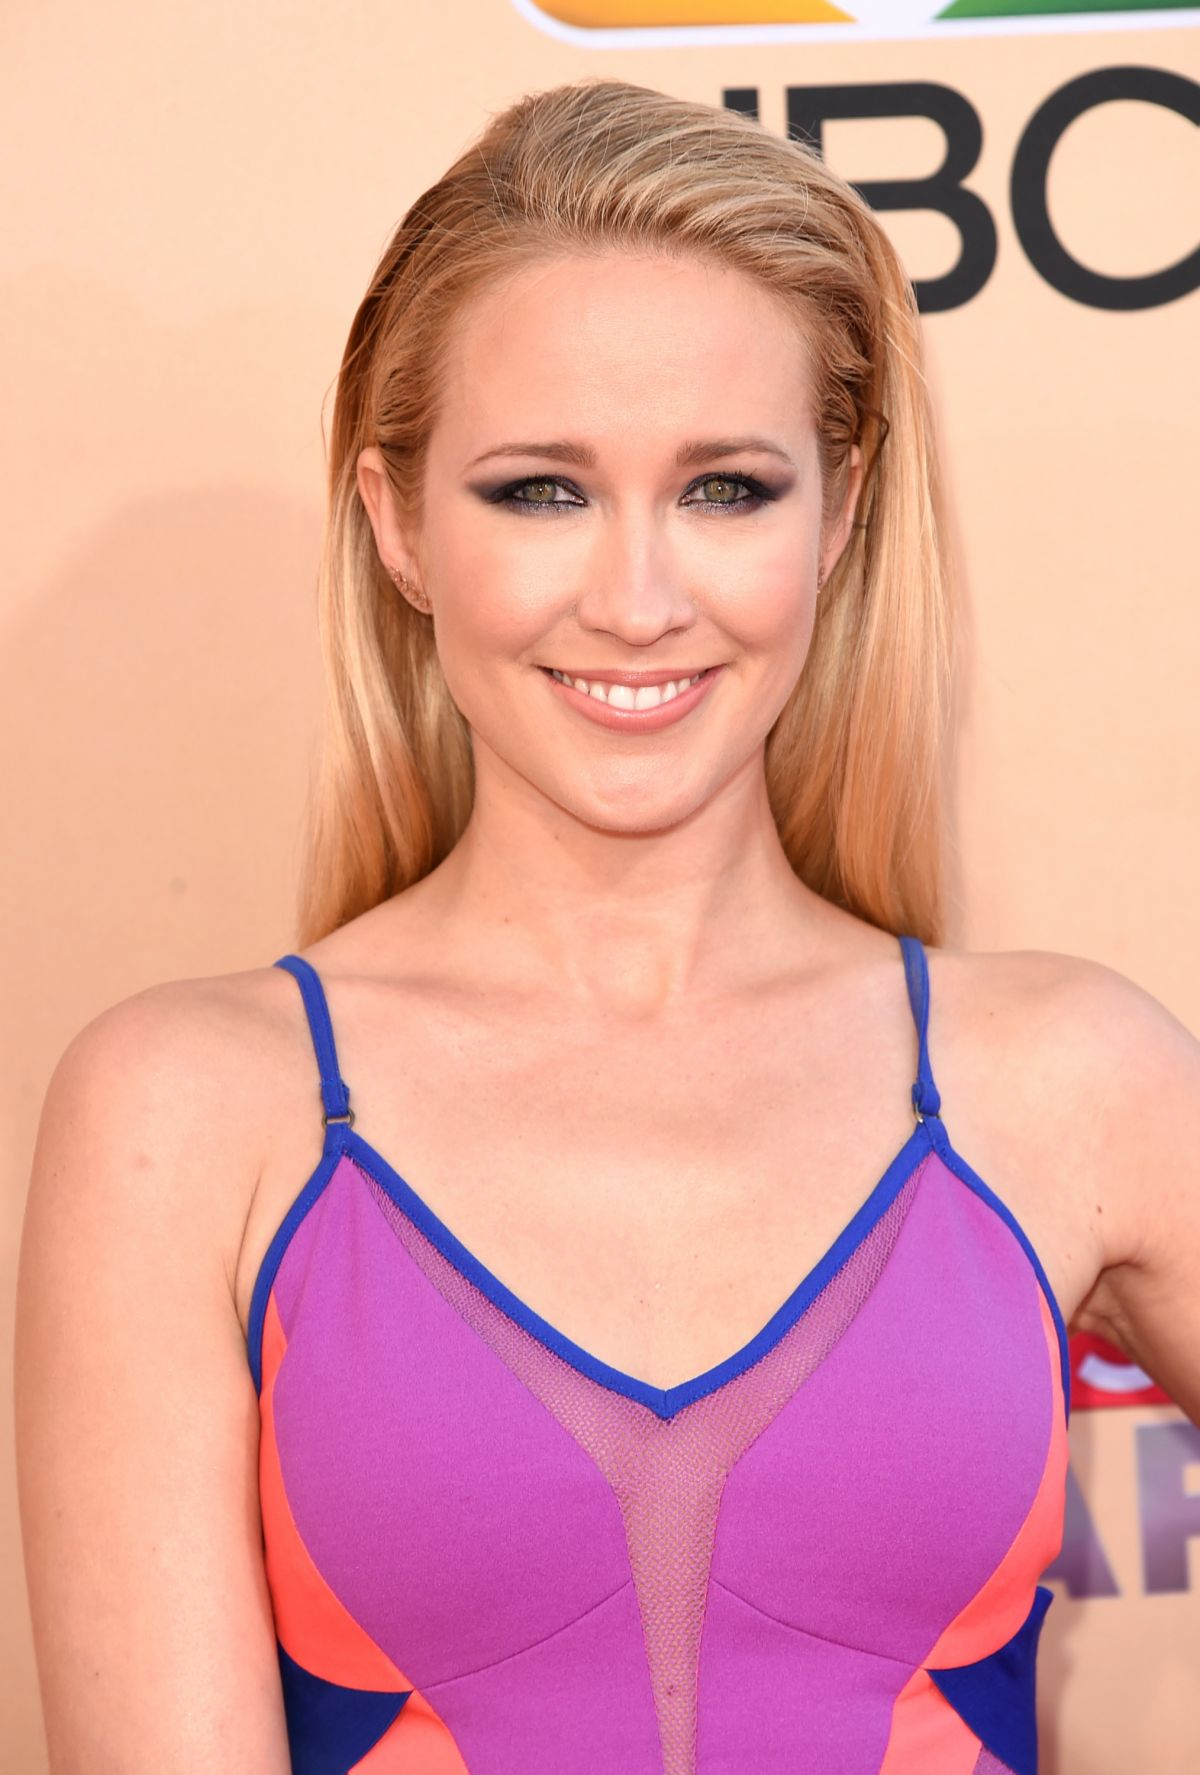 anna-camp-at-2015-iheartradio-music-awards-in-los-angeles_1